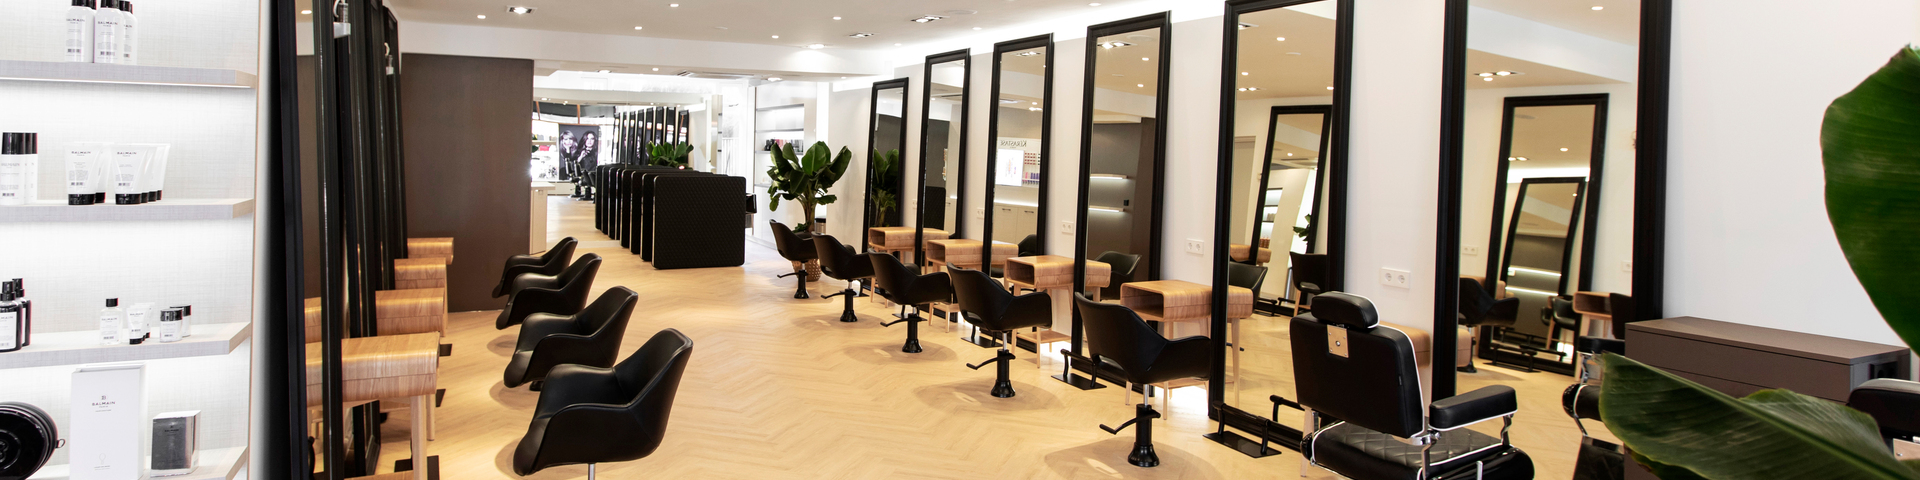 SALON X - LEON ZUIDGEEST KAPPERS